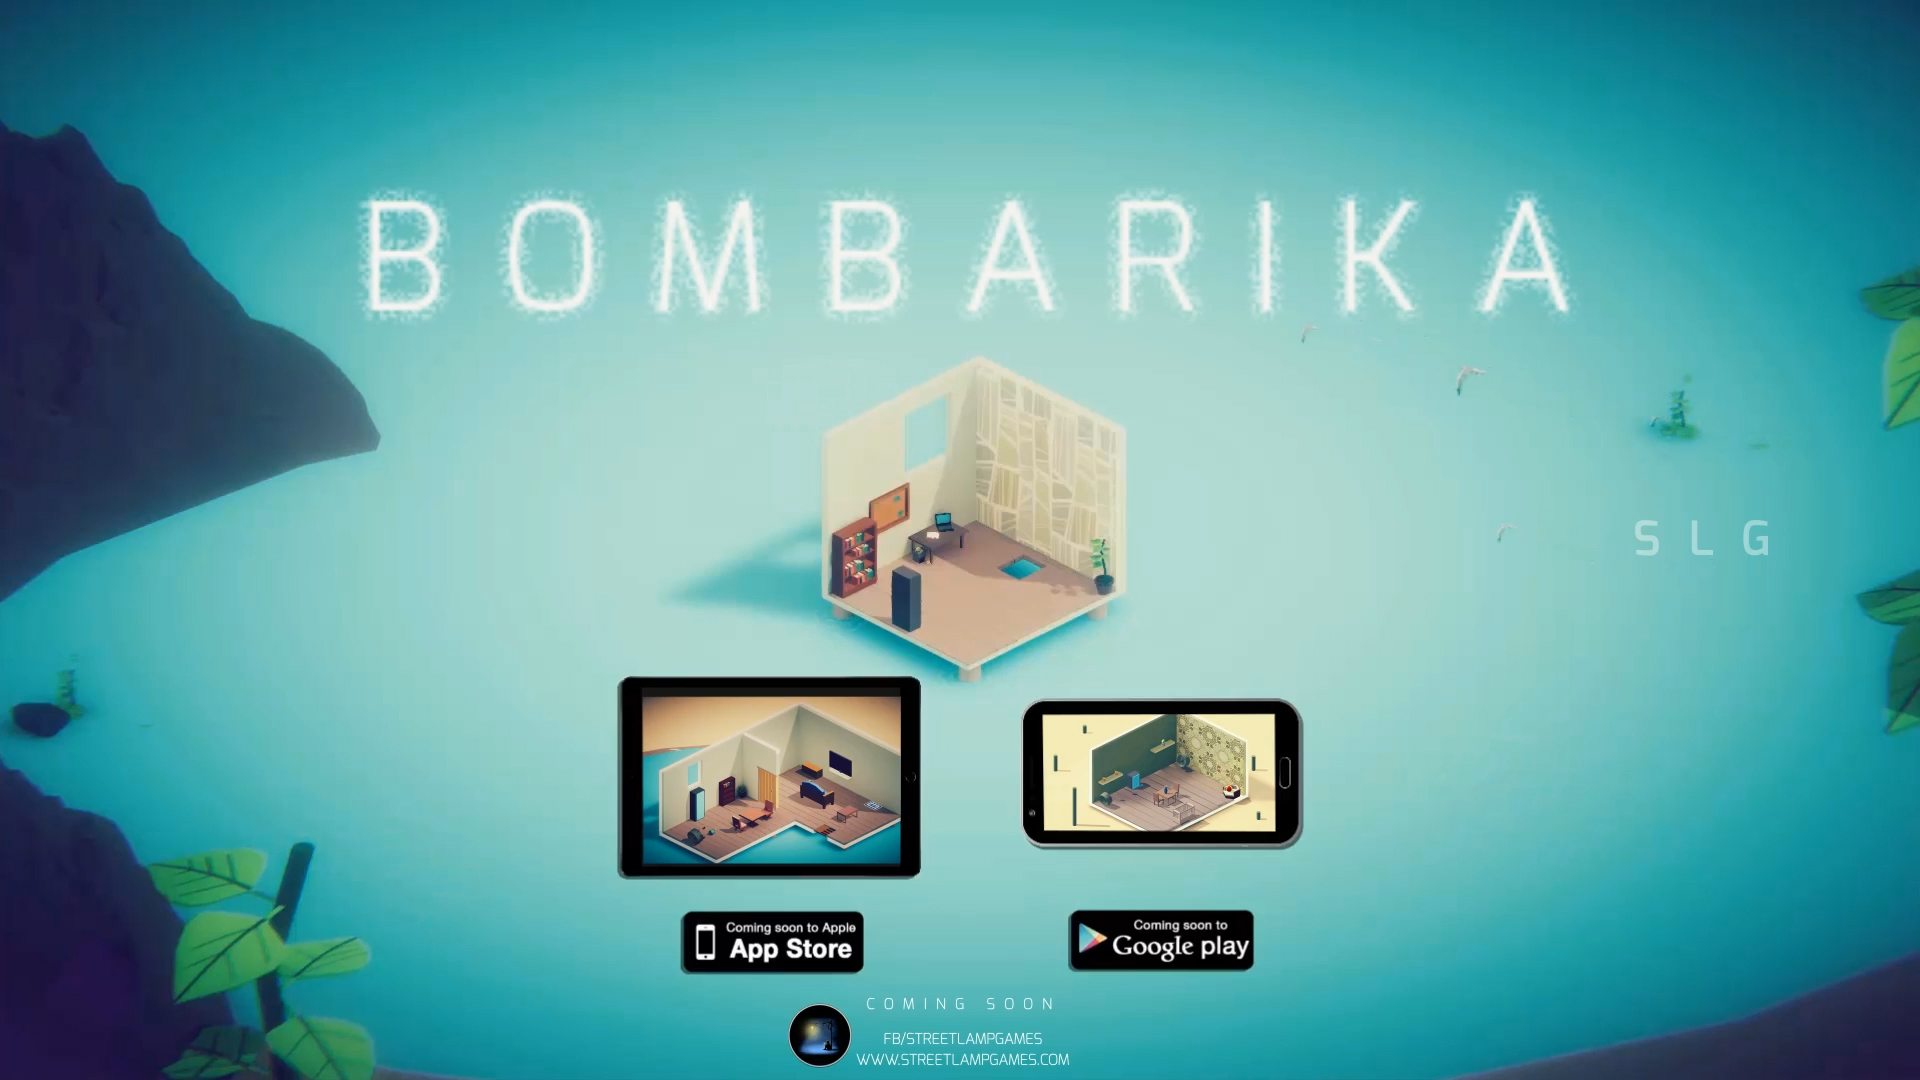 BOMBARIKA Mobile Game Trailer